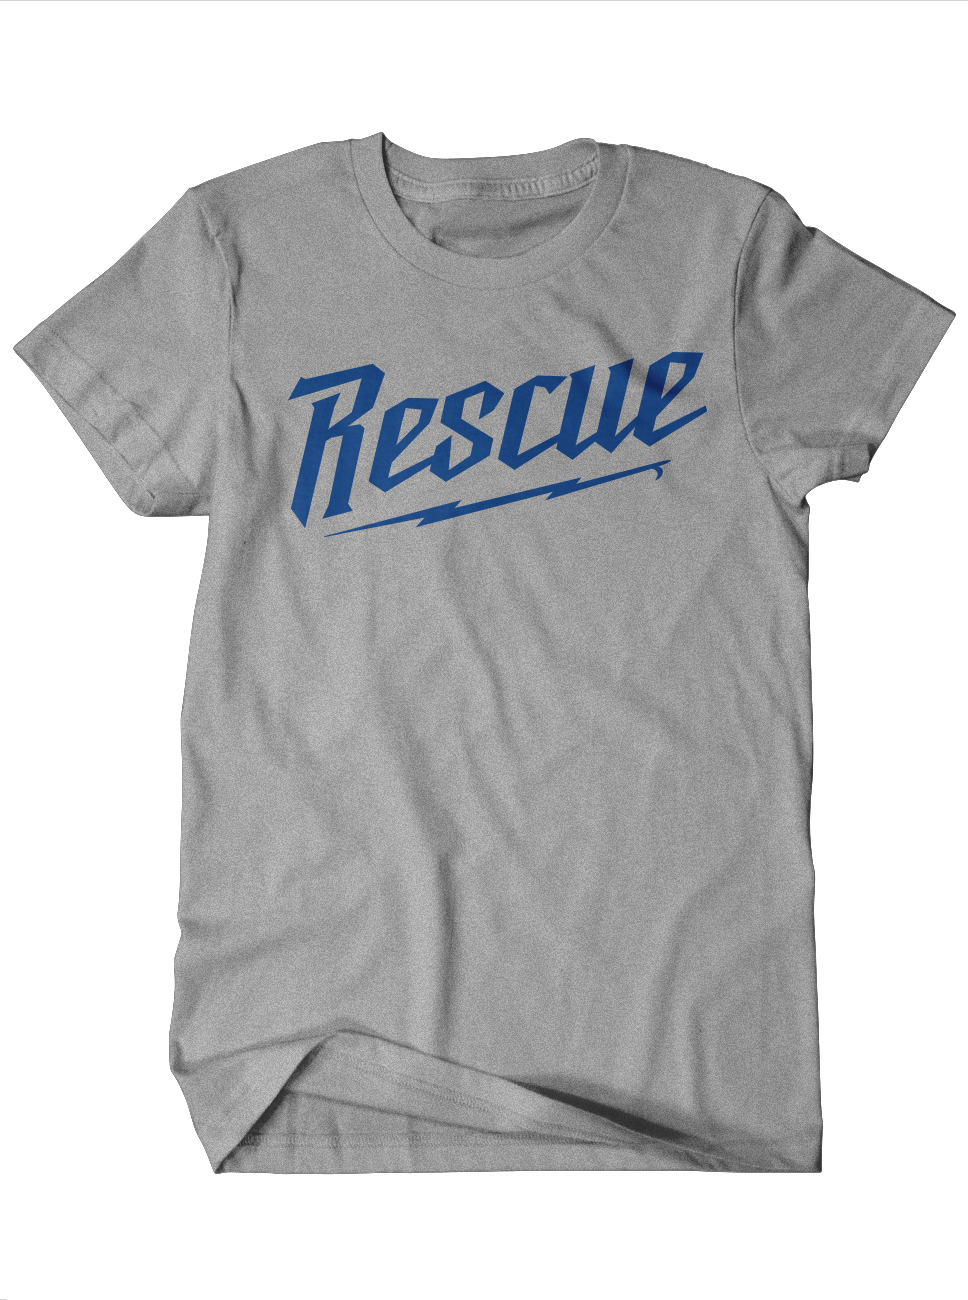 The Rescue Tee